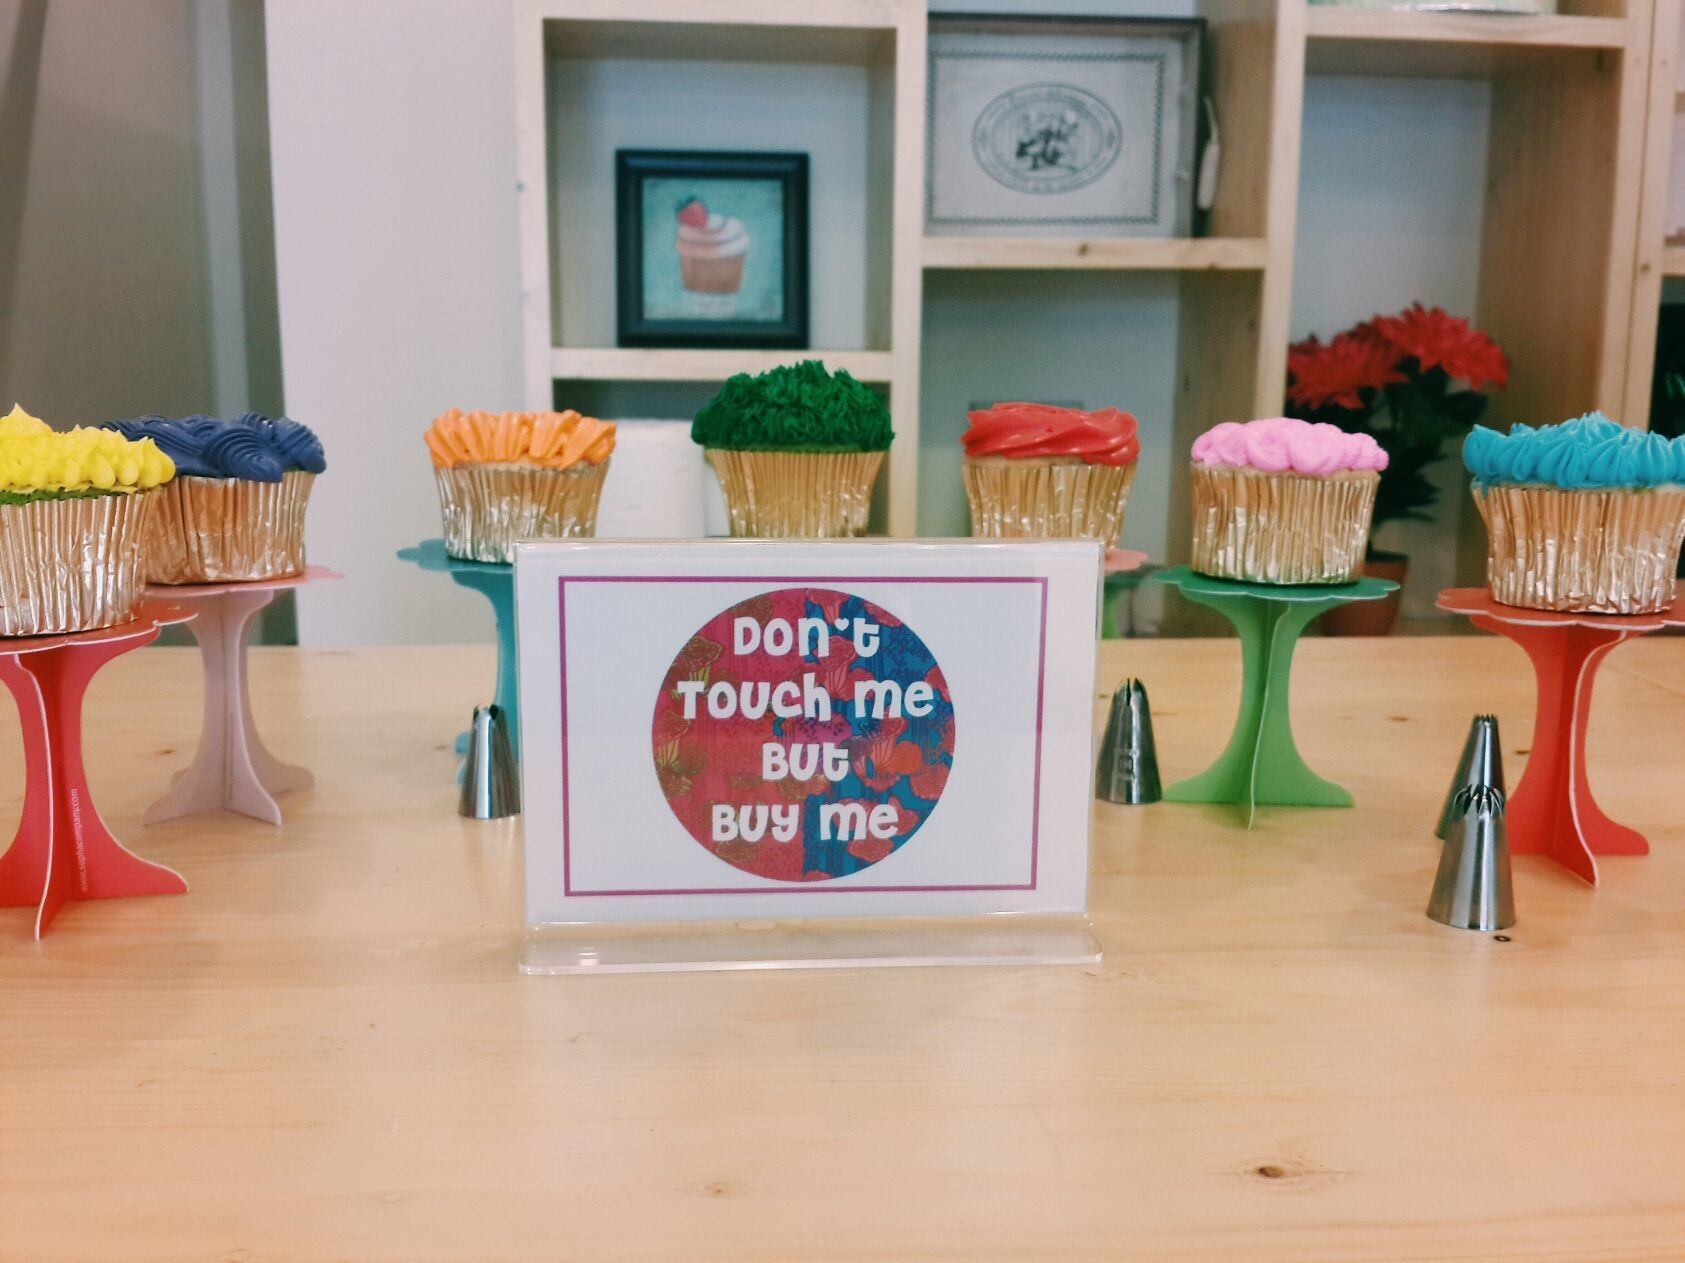 ......Said the cupcakes on show desk...